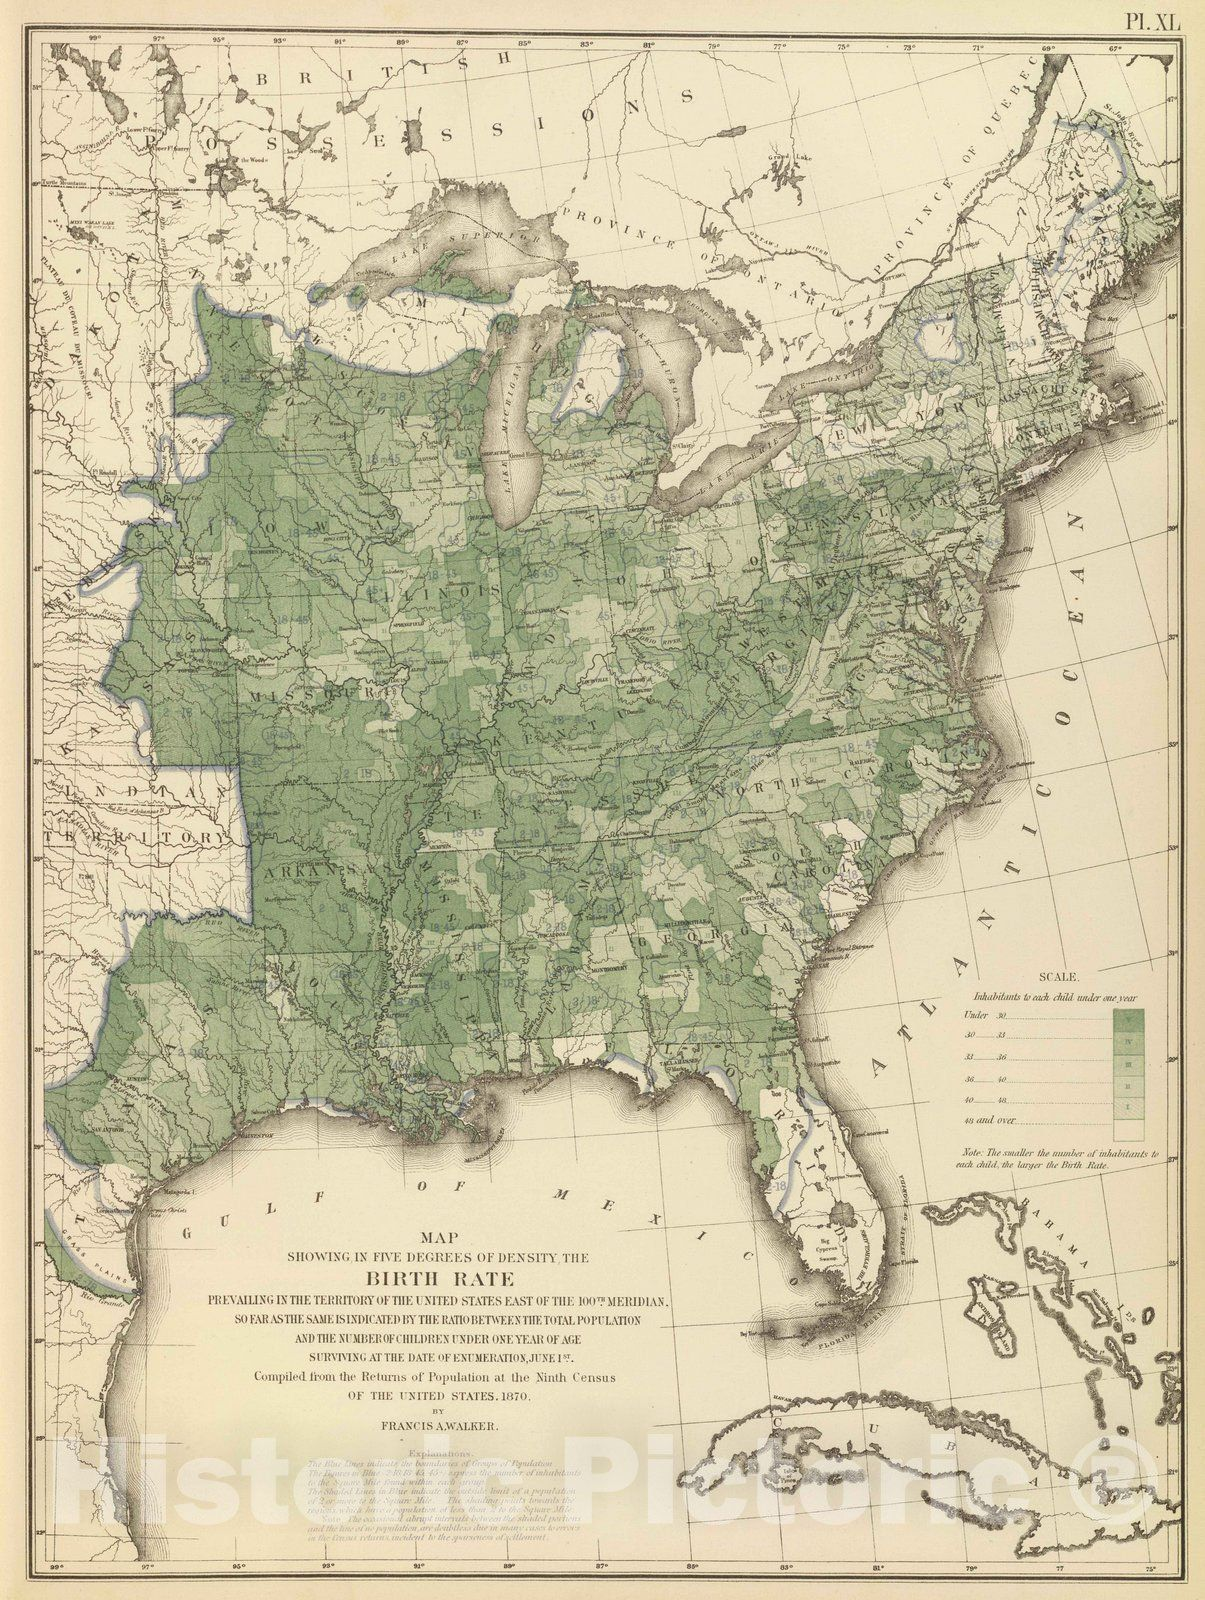 Historic Wall Map : Statistical Atlas - 1874 Birth rate US. - Vintage Wall Art